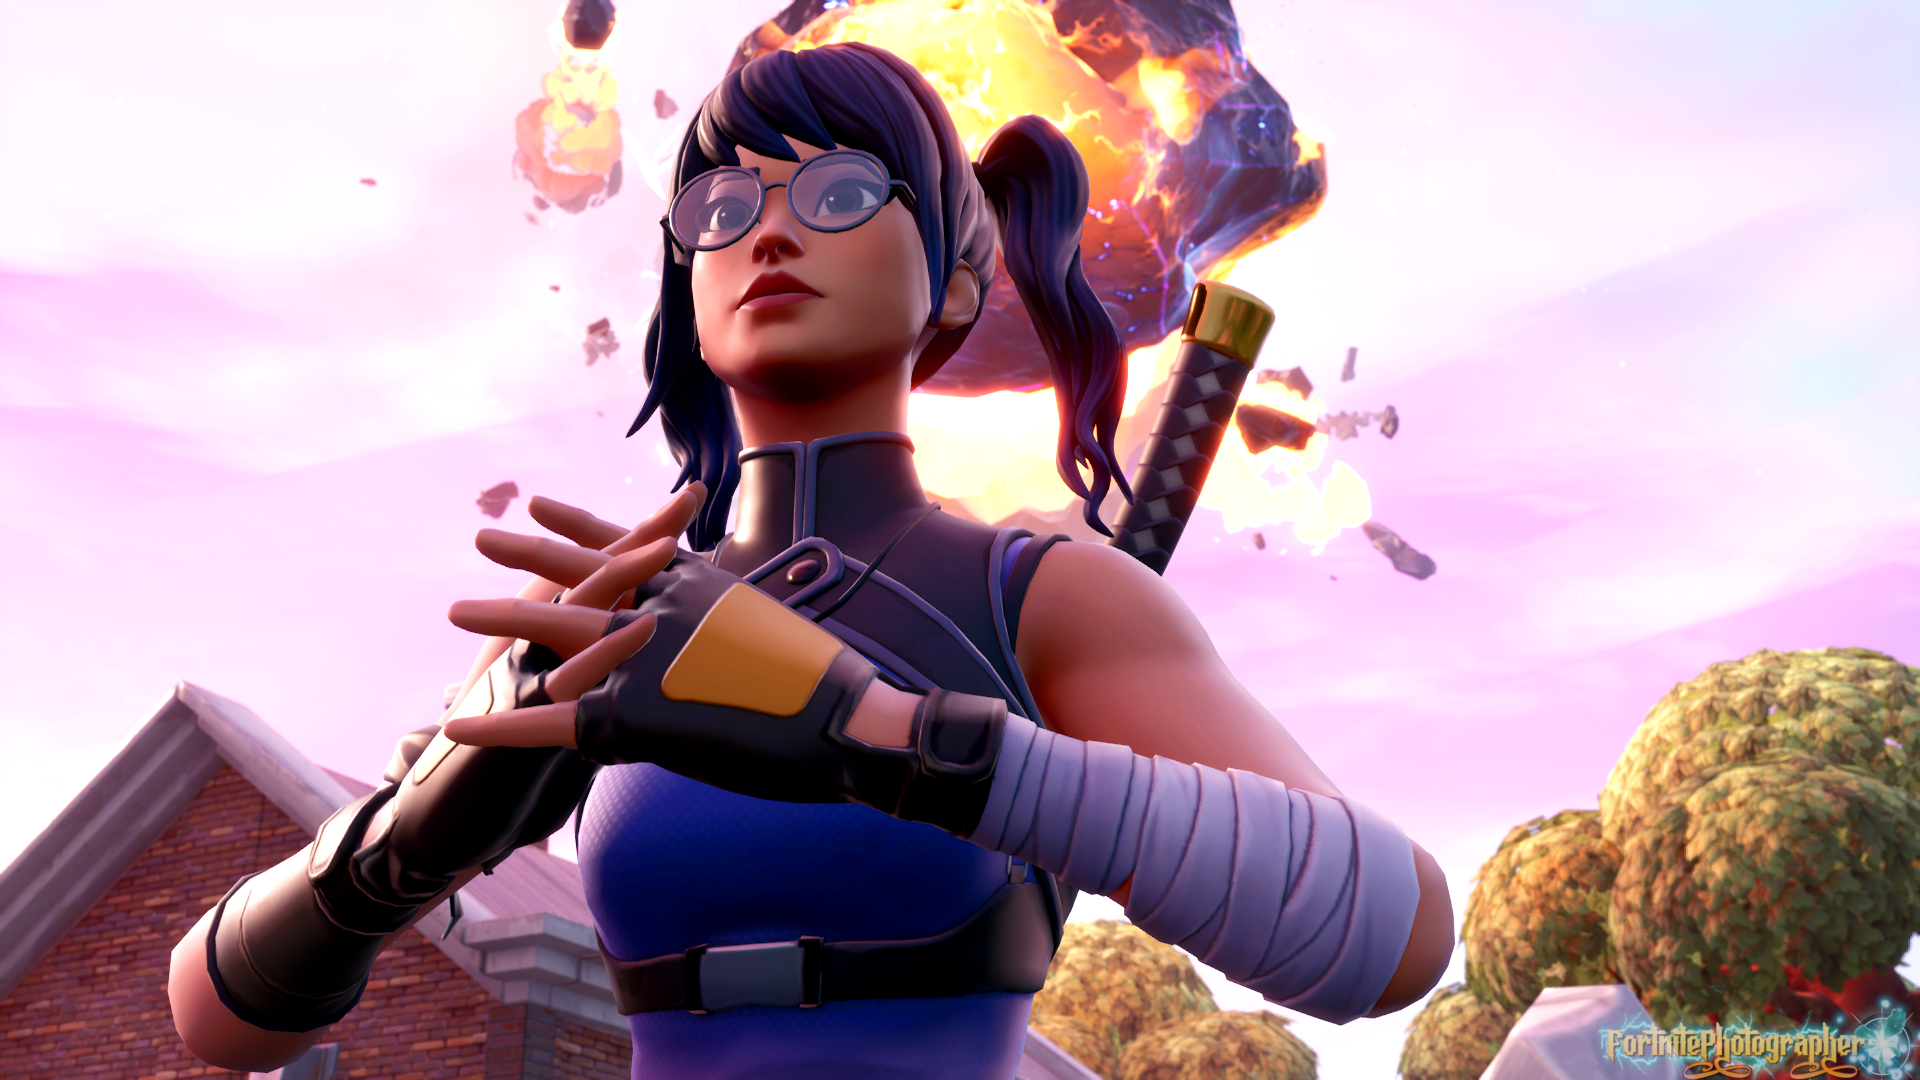 Fortniteminiaturas In 2020 With Images Best Gaming Wallpapers